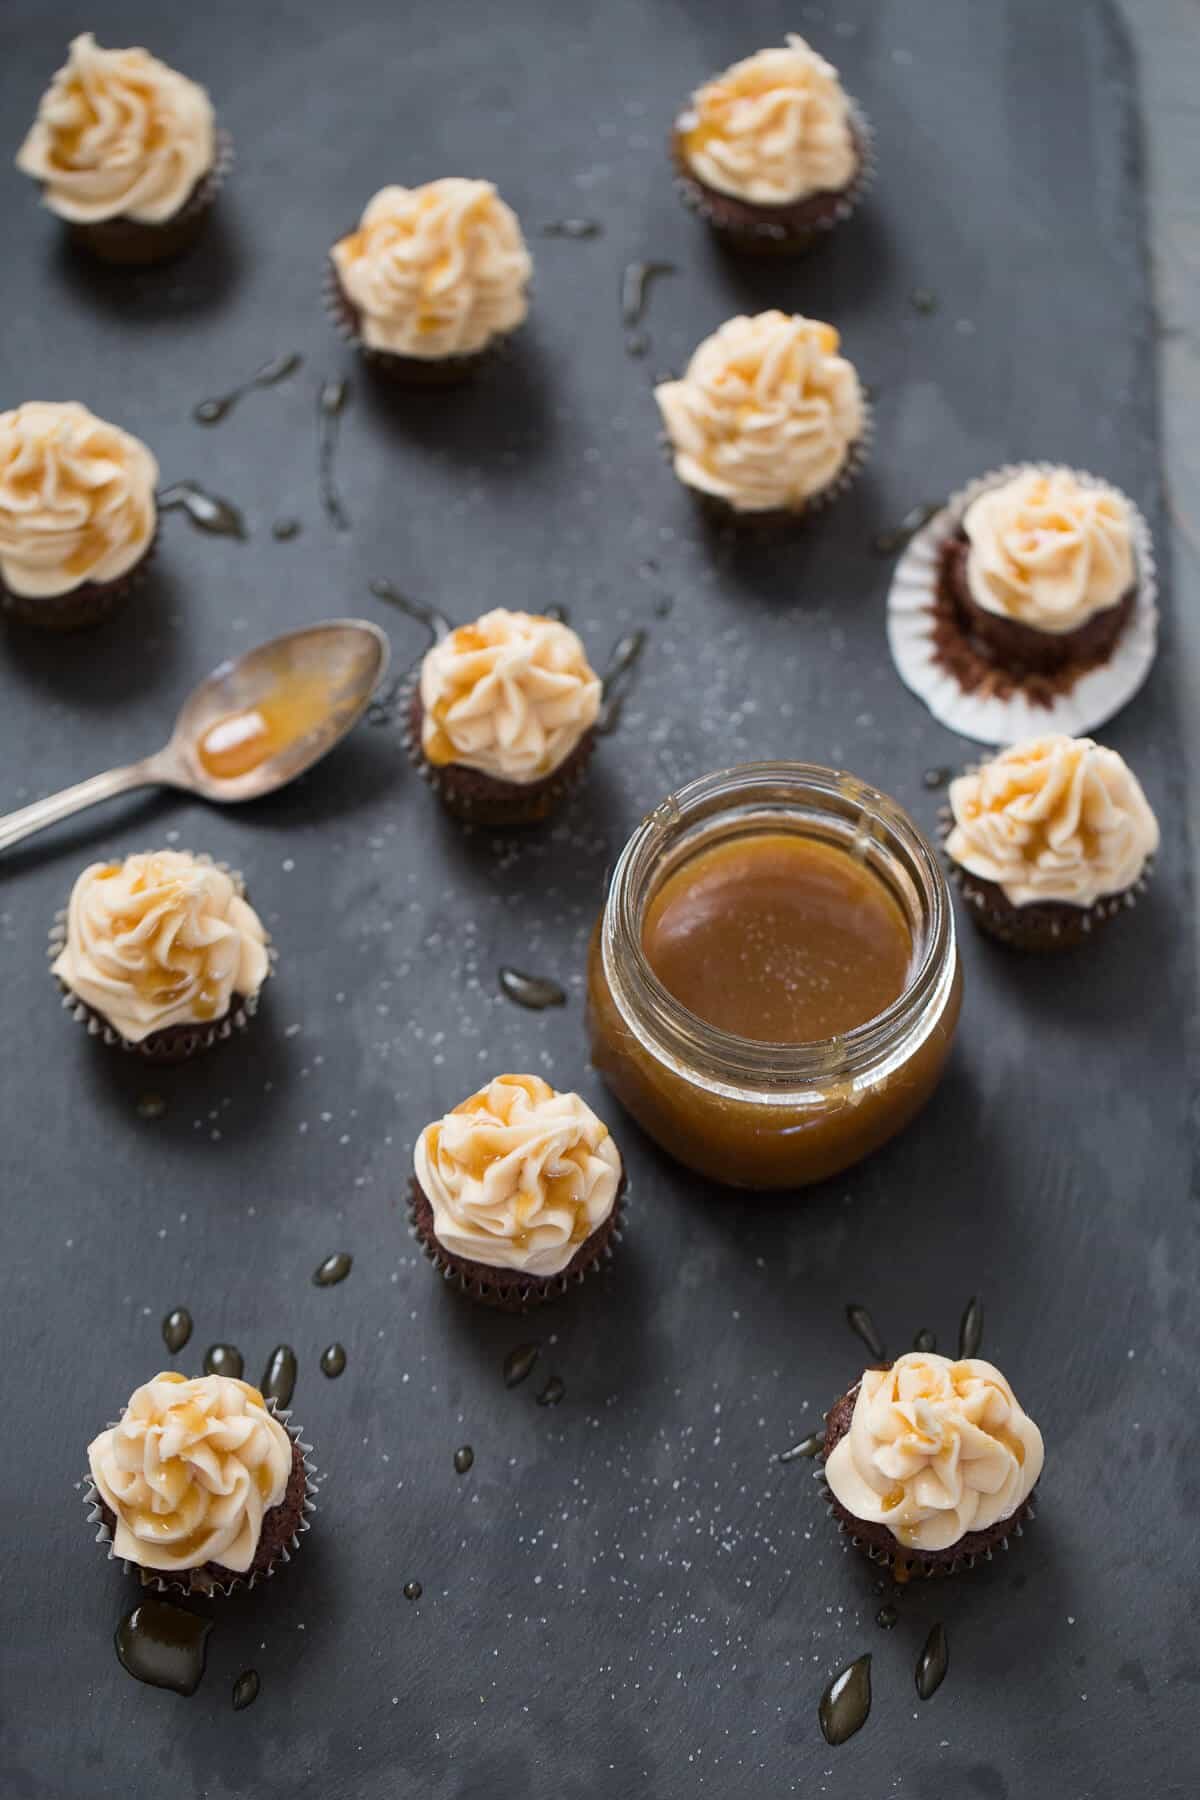 Salted Caramel Brownies made with Irish cream! These bite-size treats will go fast!